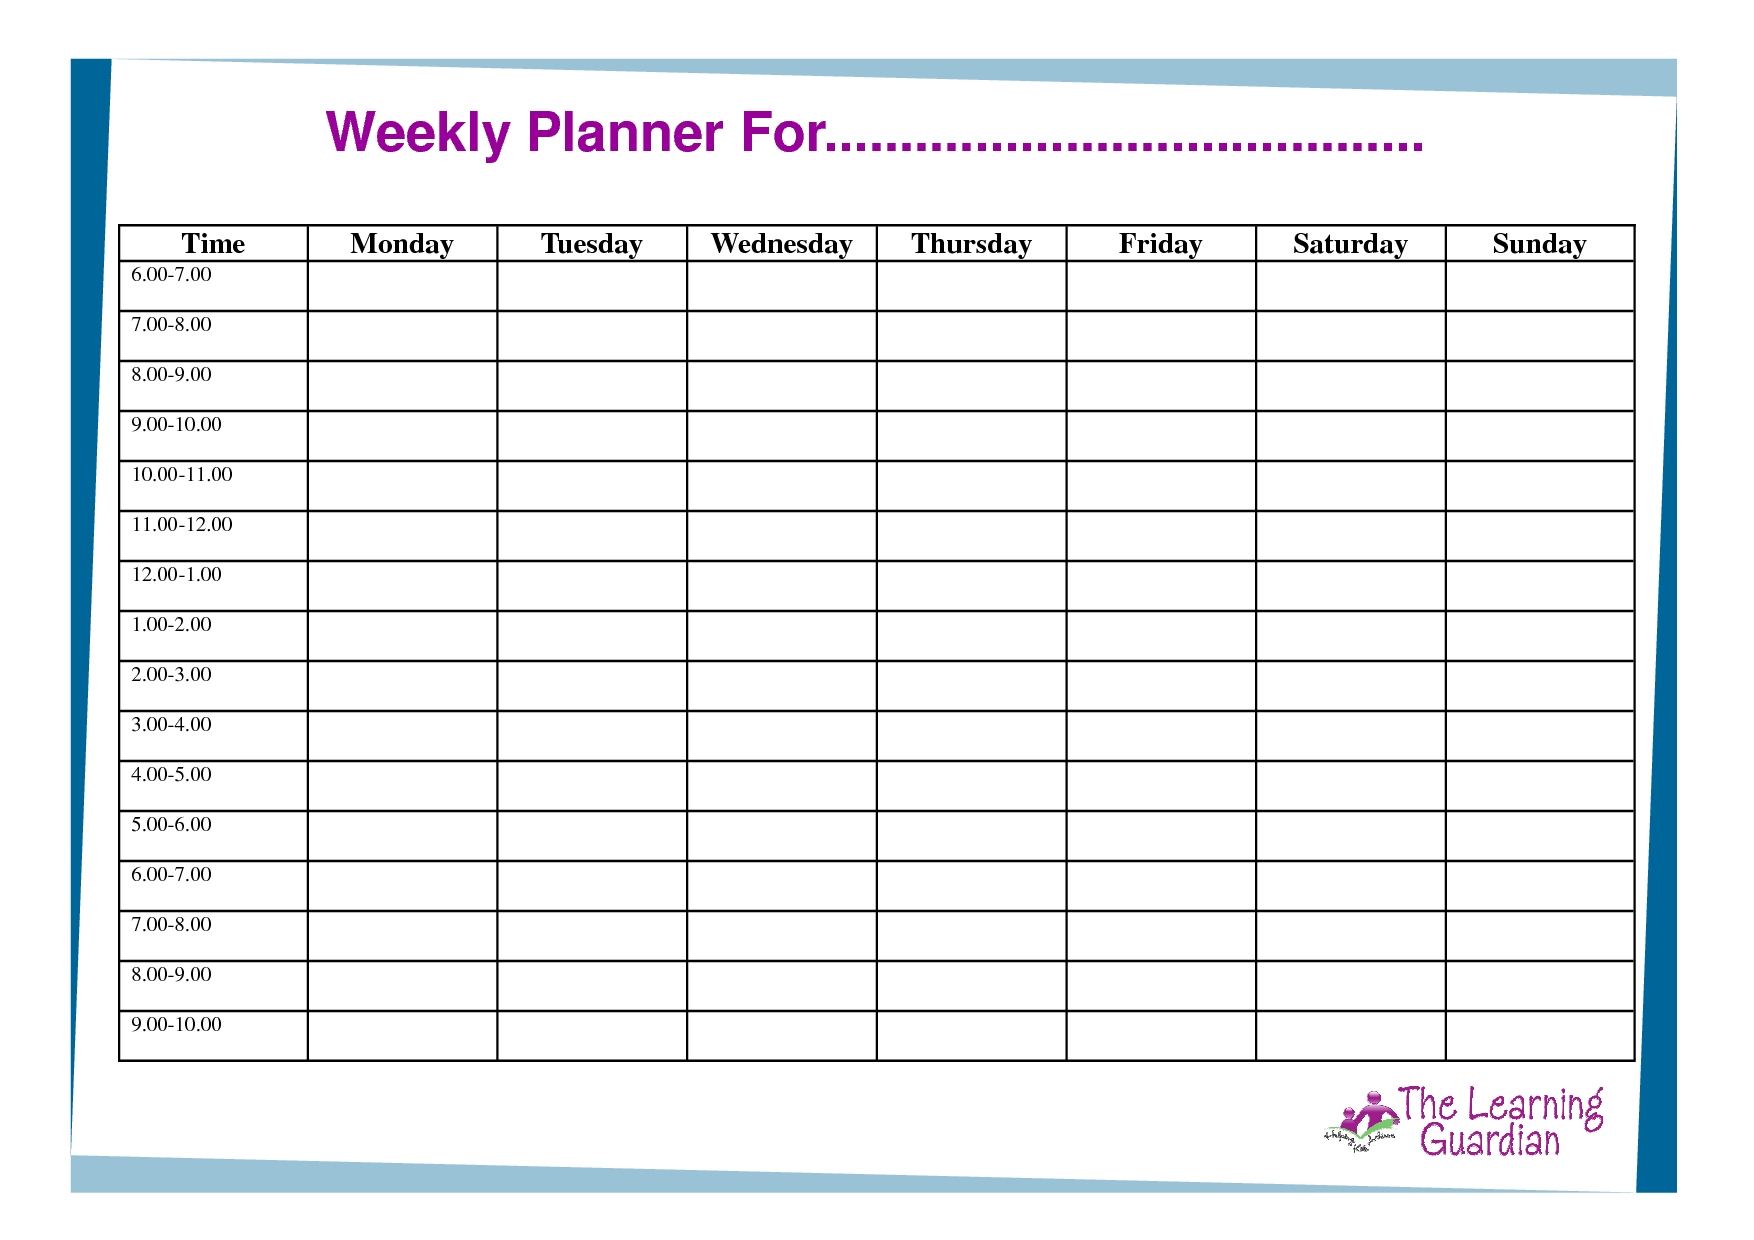 Free Printable Weekly Calendar Templates | Weekly Planner For Time pertaining to Printable 7-Day Calendar Template Monday Starts With That